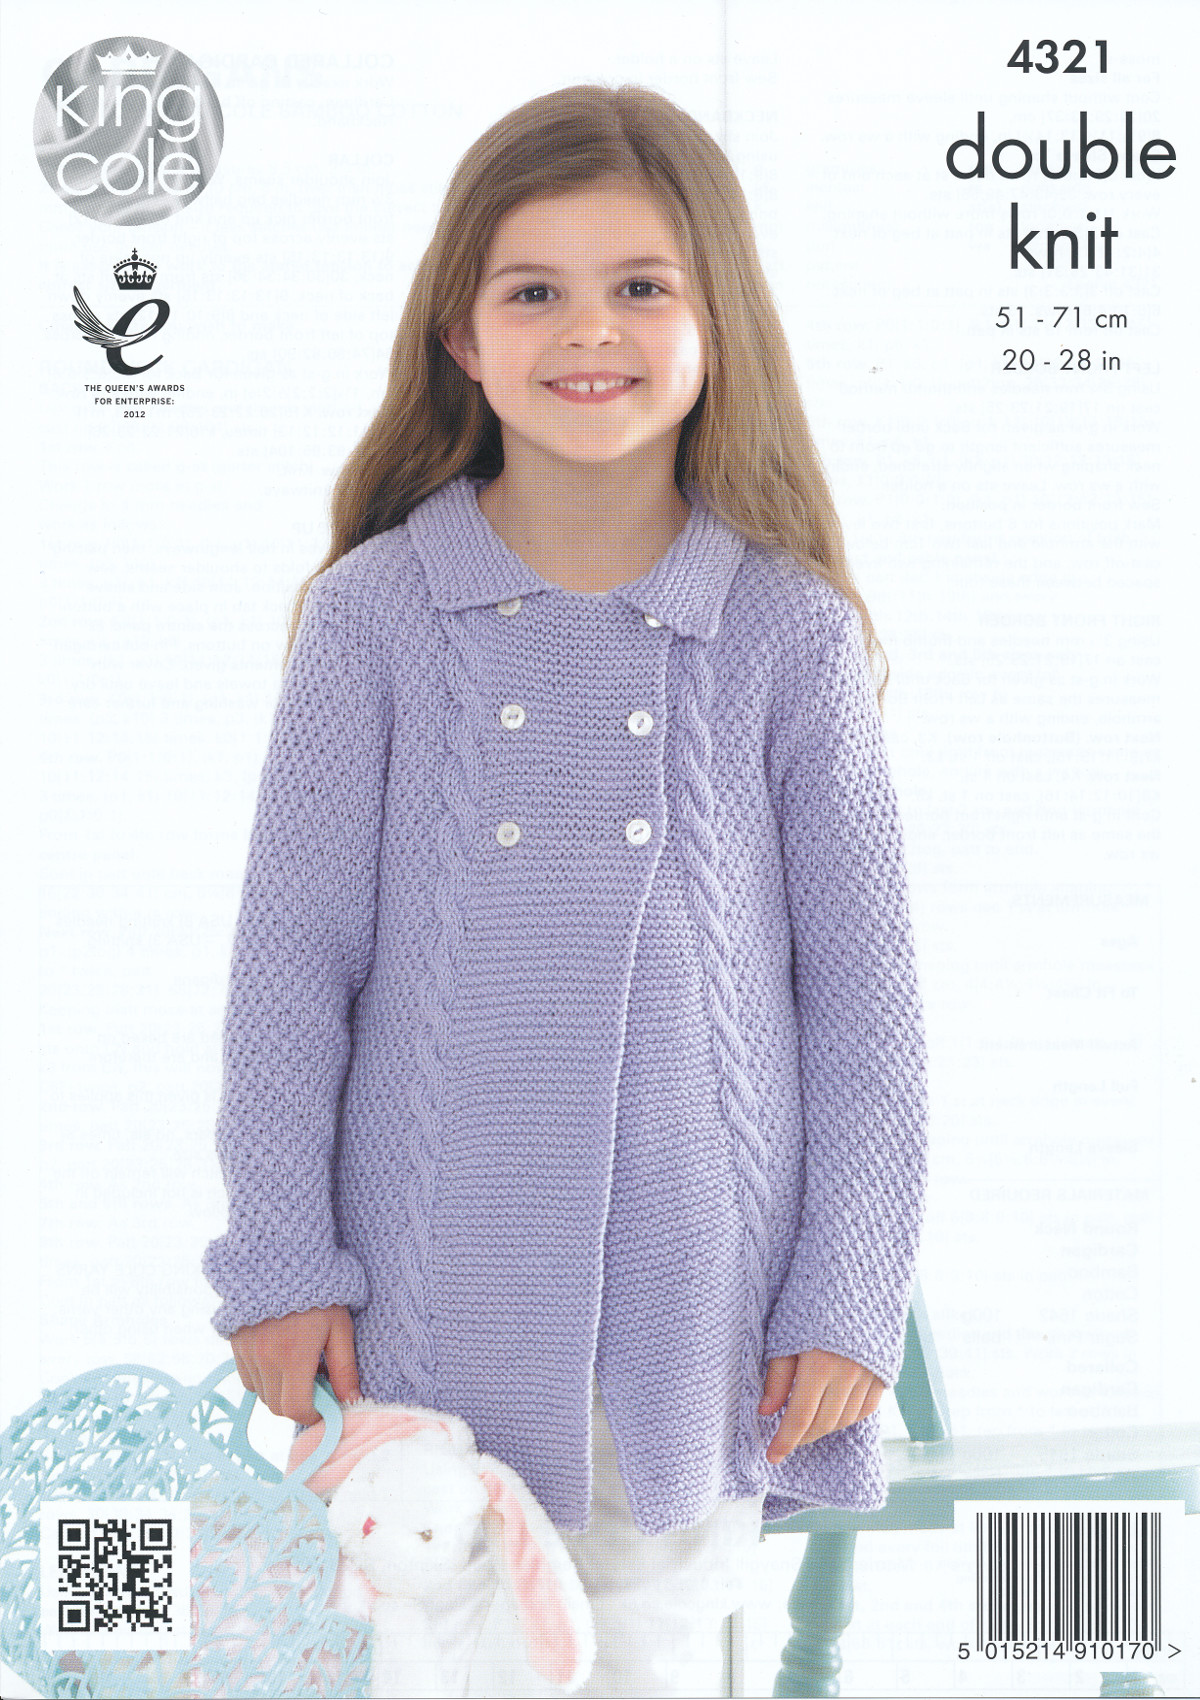 Knitting Patterns For King Cole Bamboo Cotton : Kids Double Knitting Pattern King Cole Girls Cardigans Bamboo Cotton DK 4321 ...